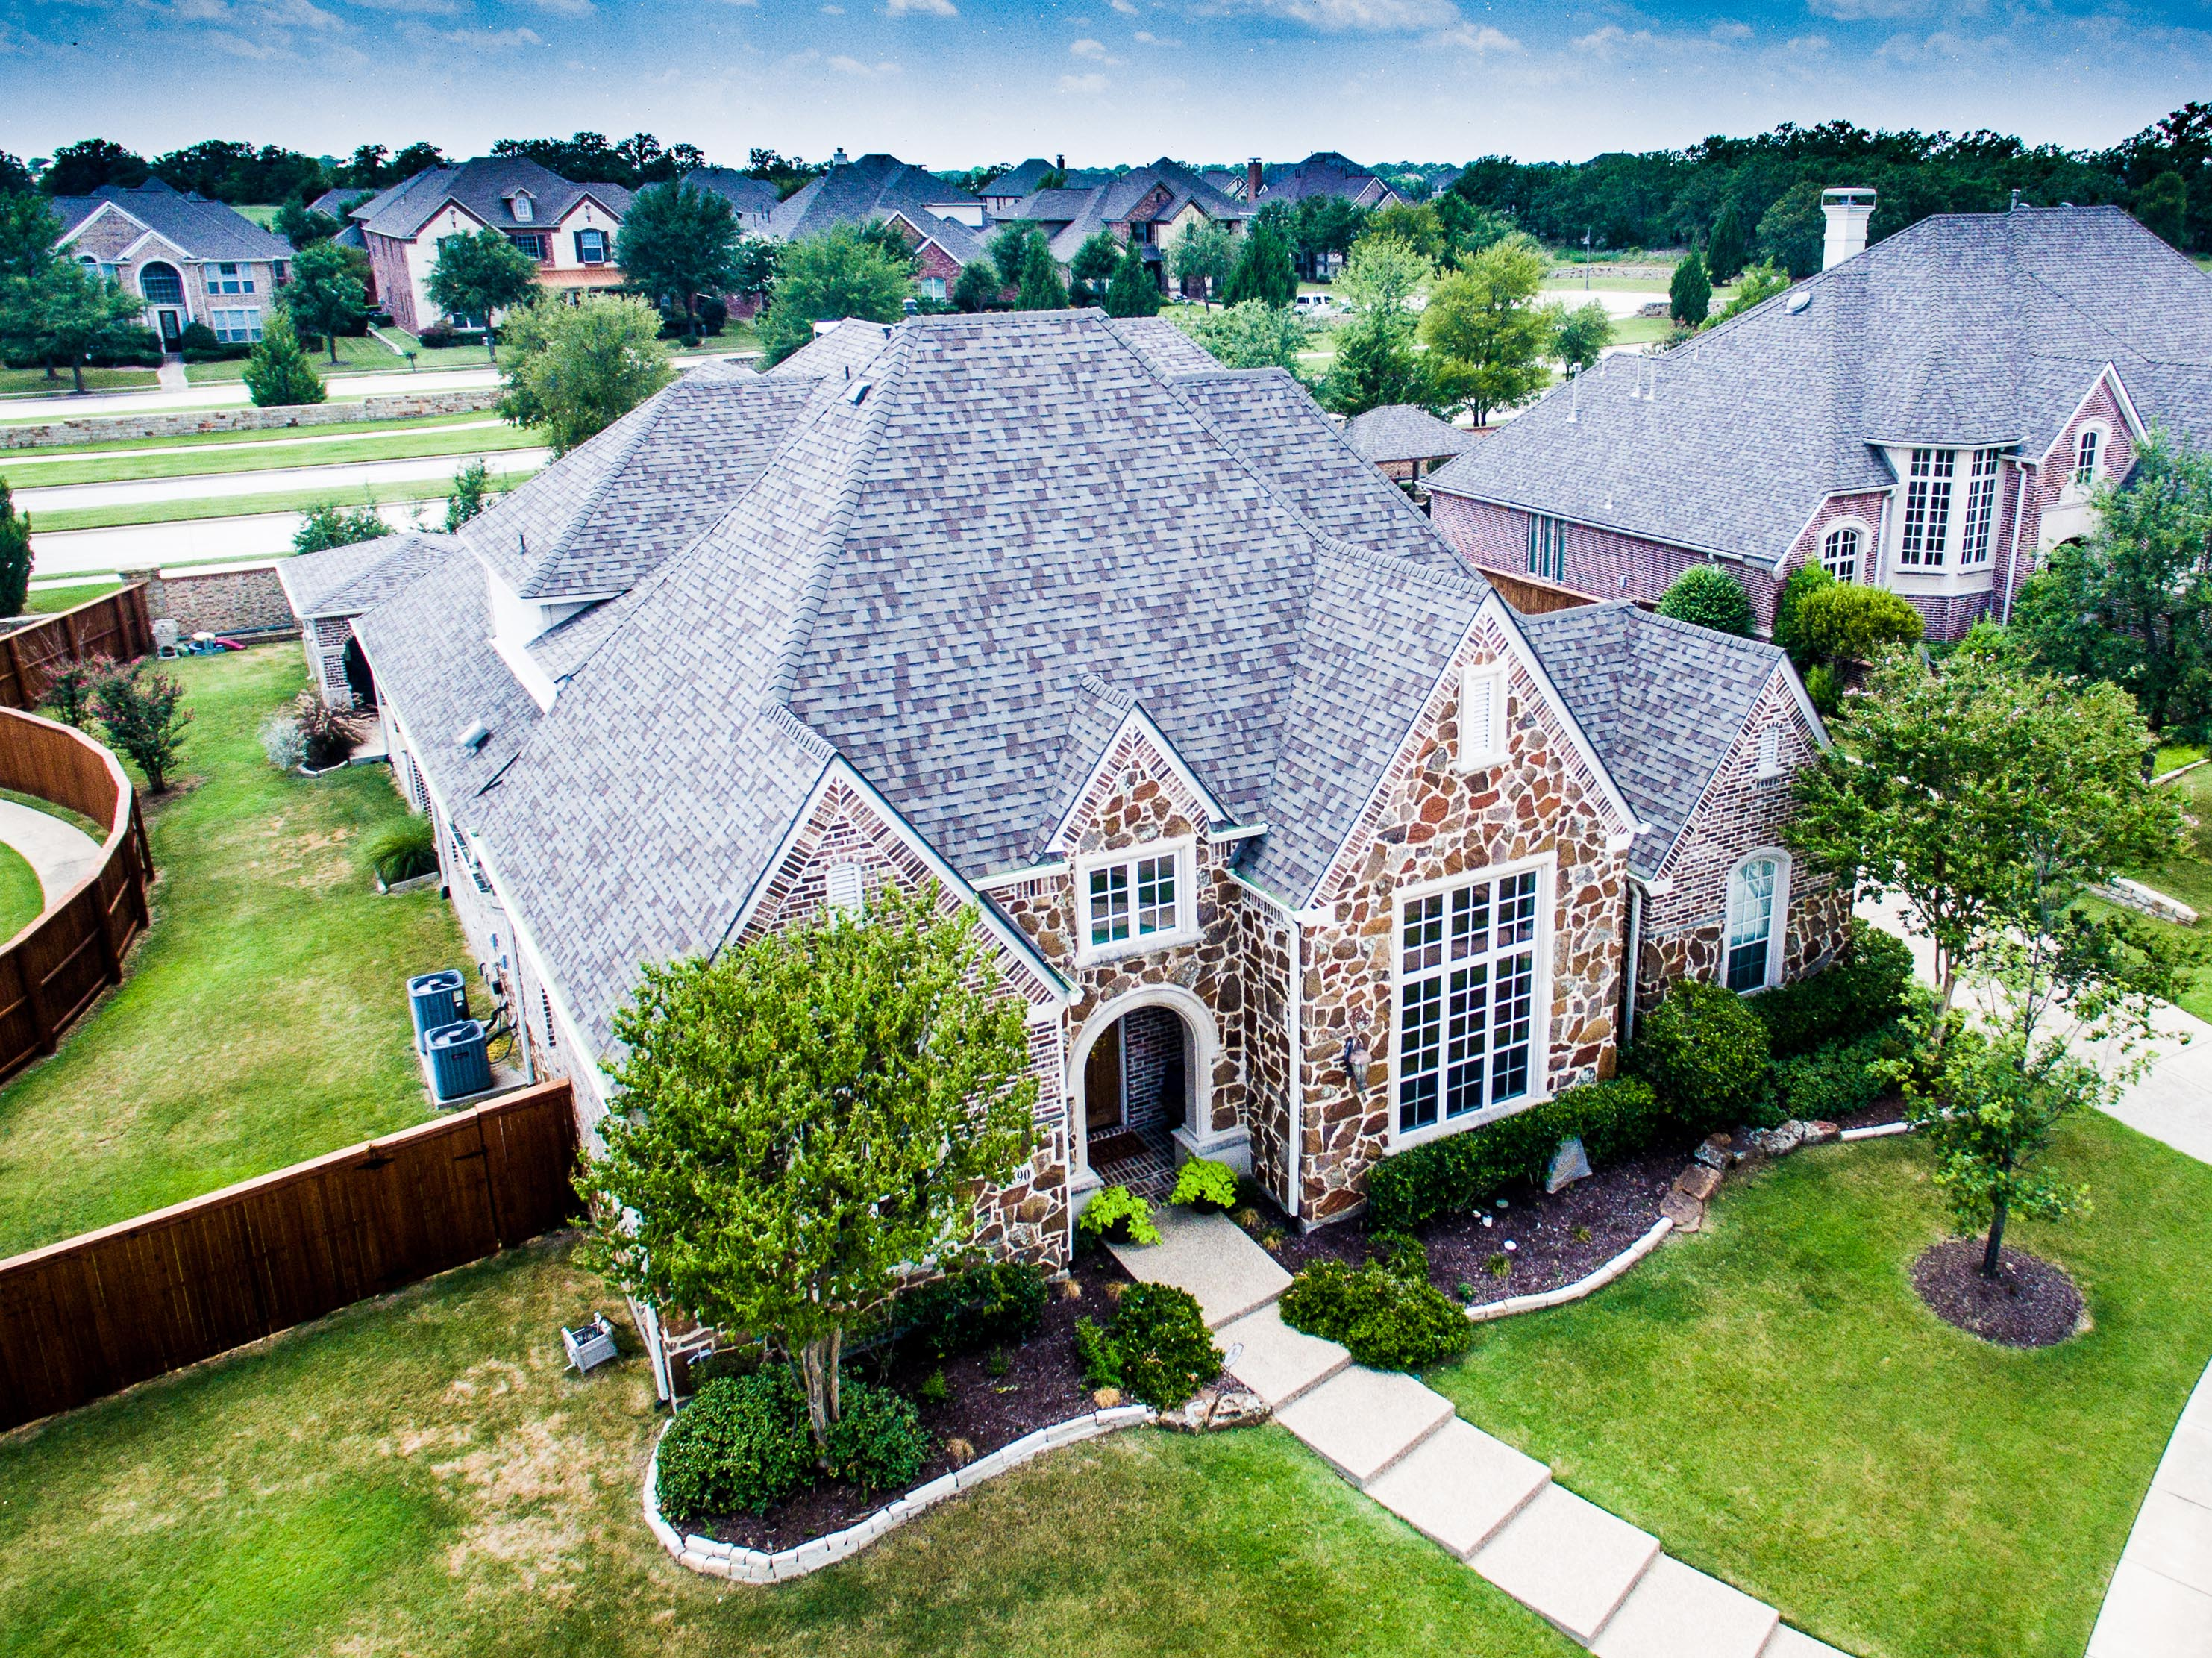 Tile Roofing in Tx